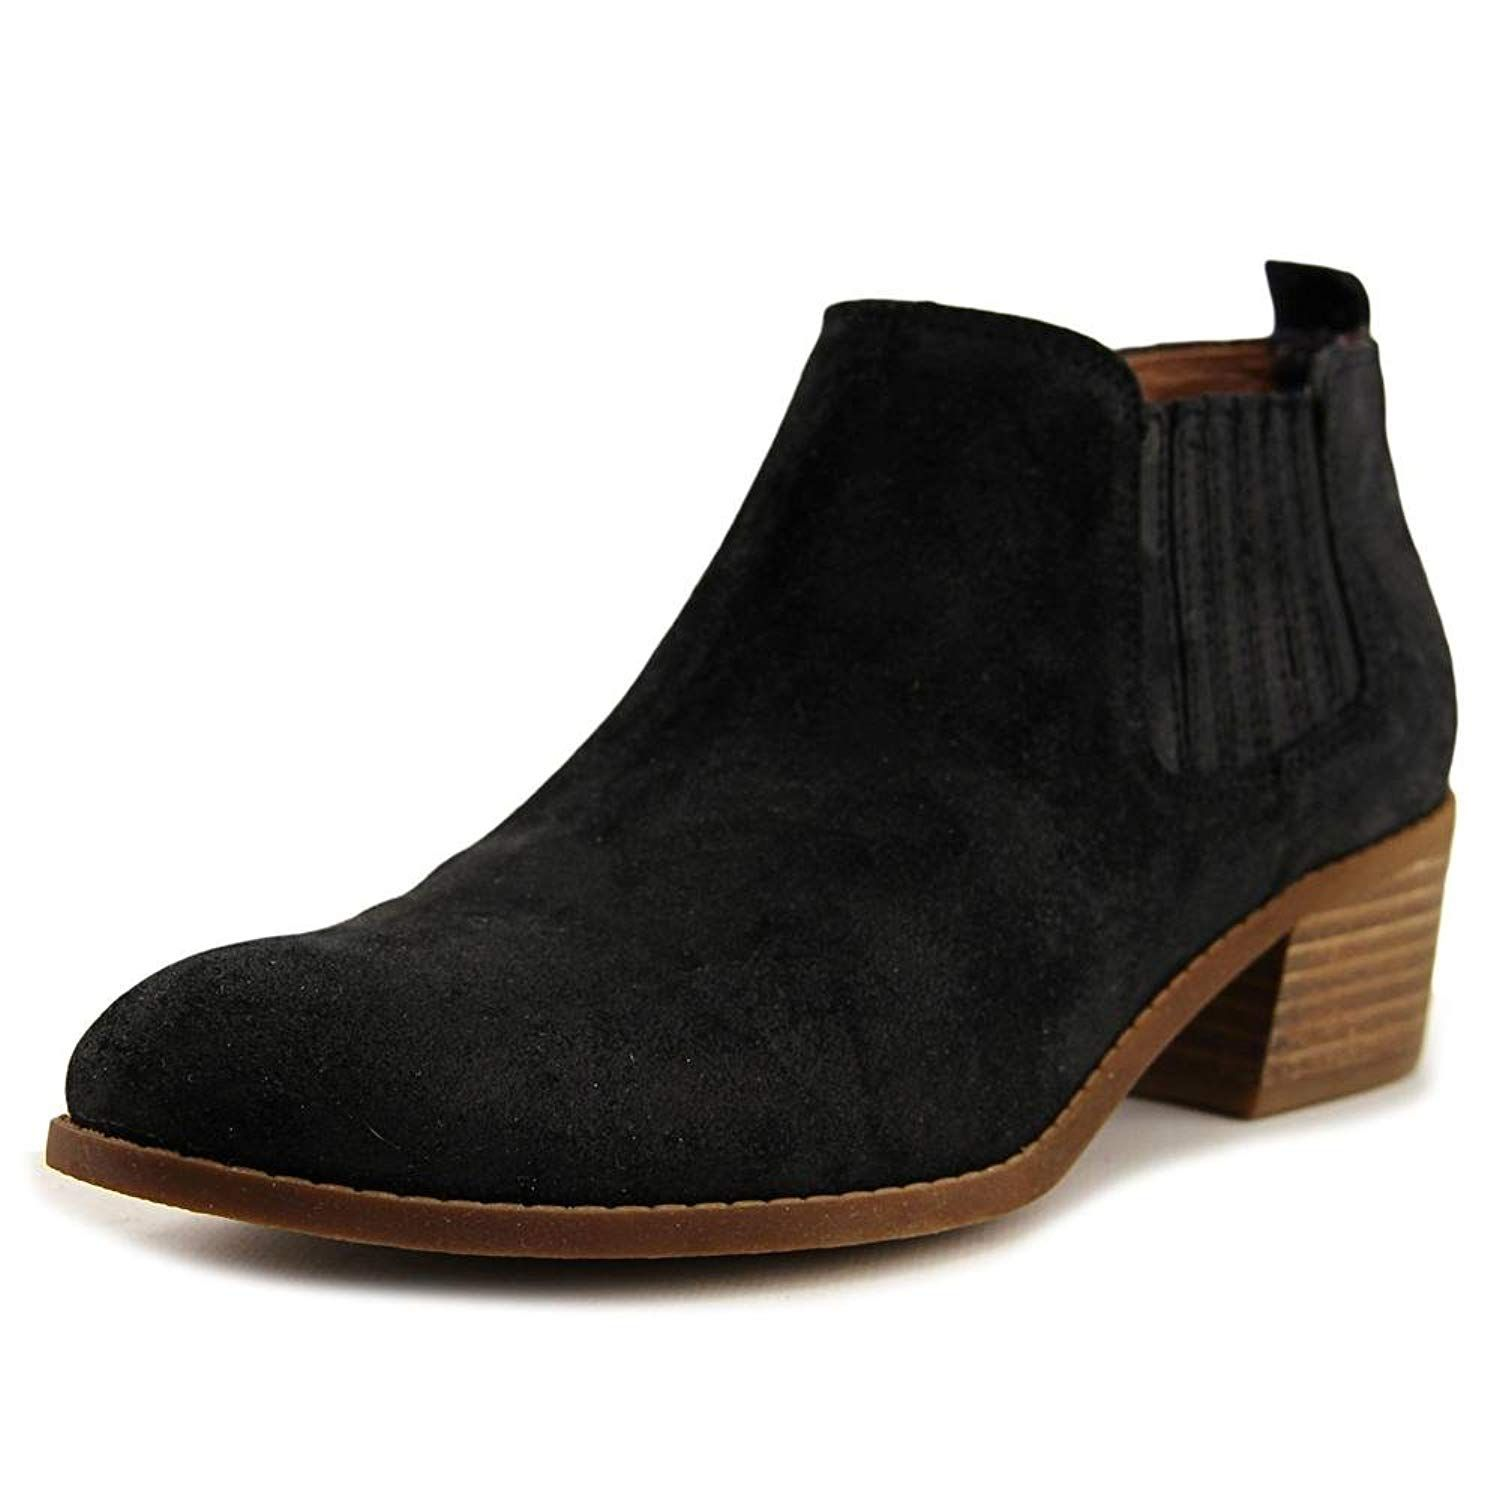 3b657b2c4448a1 Tommy Hilfiger Ripley Ankle Booties. These double gored booties from Tommy  Hilfiger are a revitalized Western classic. Wear them with jeans